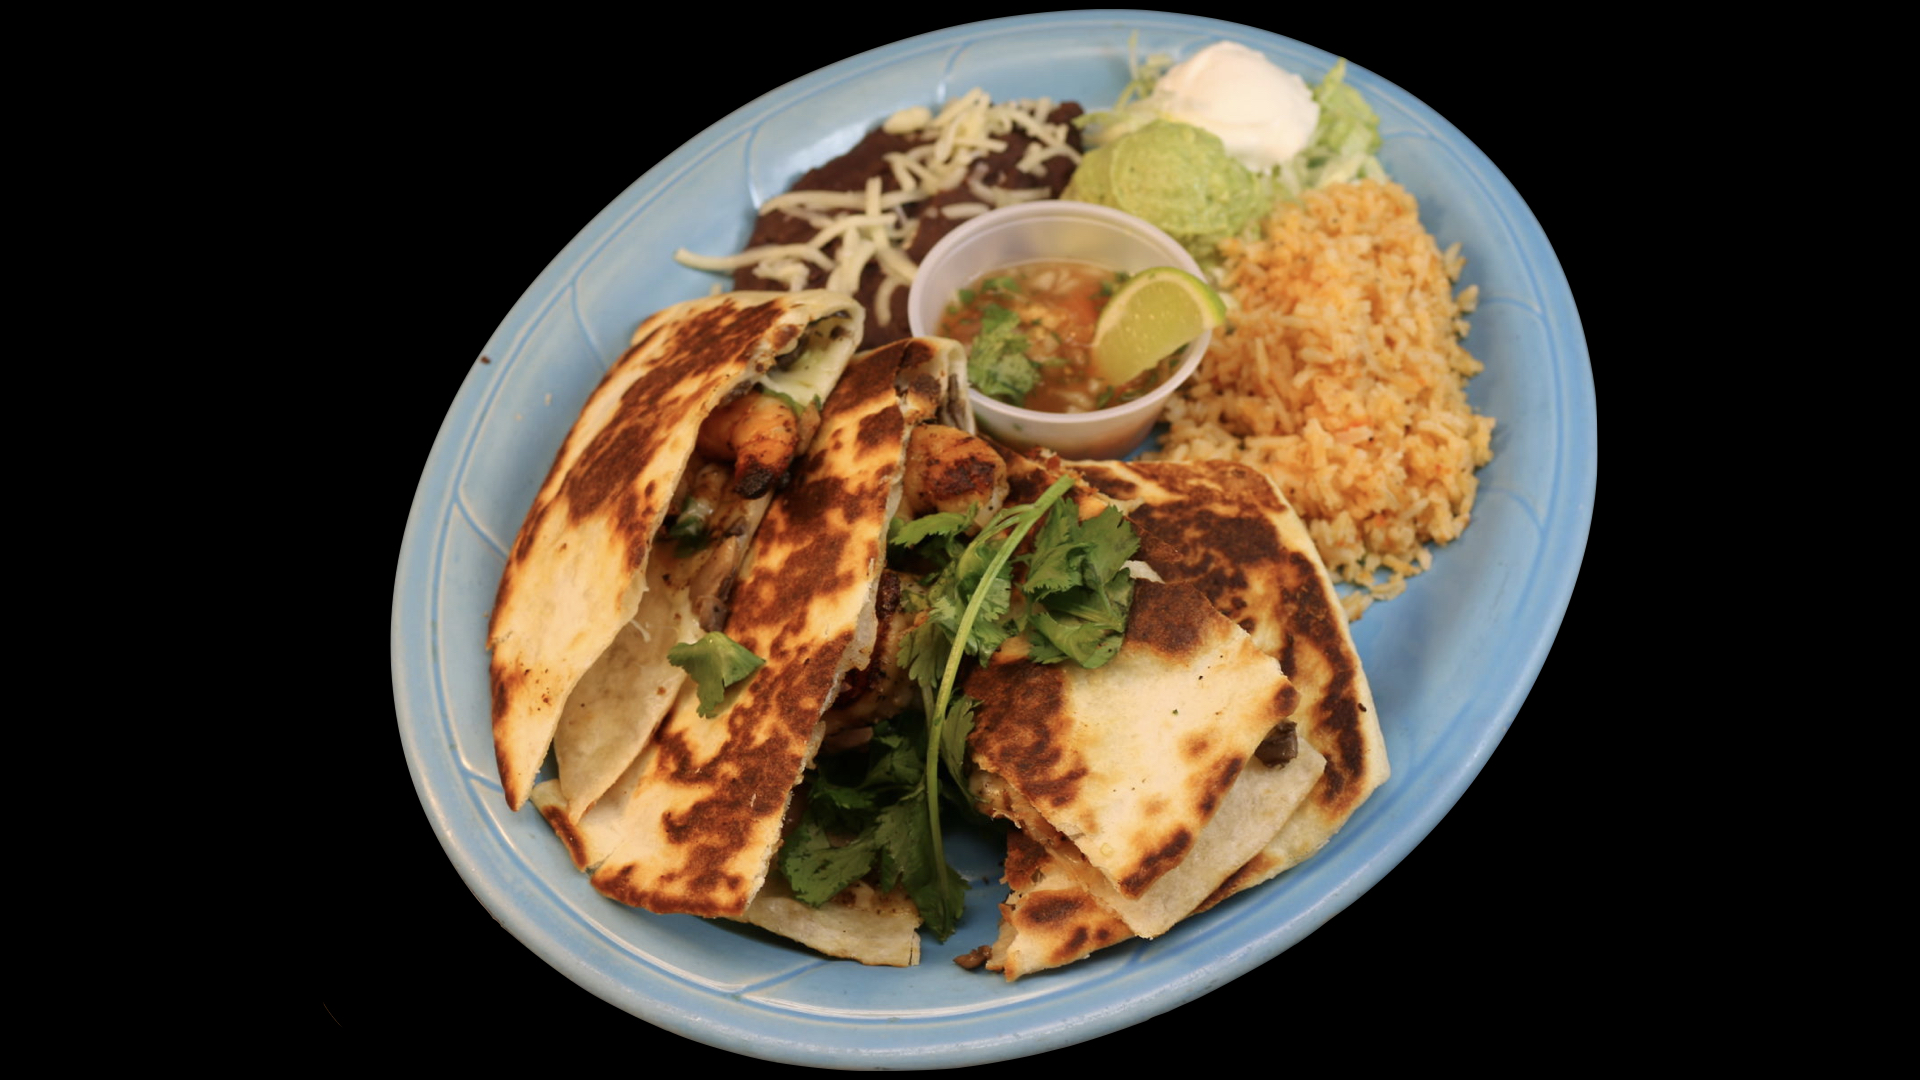 Rancho House Quesadilla